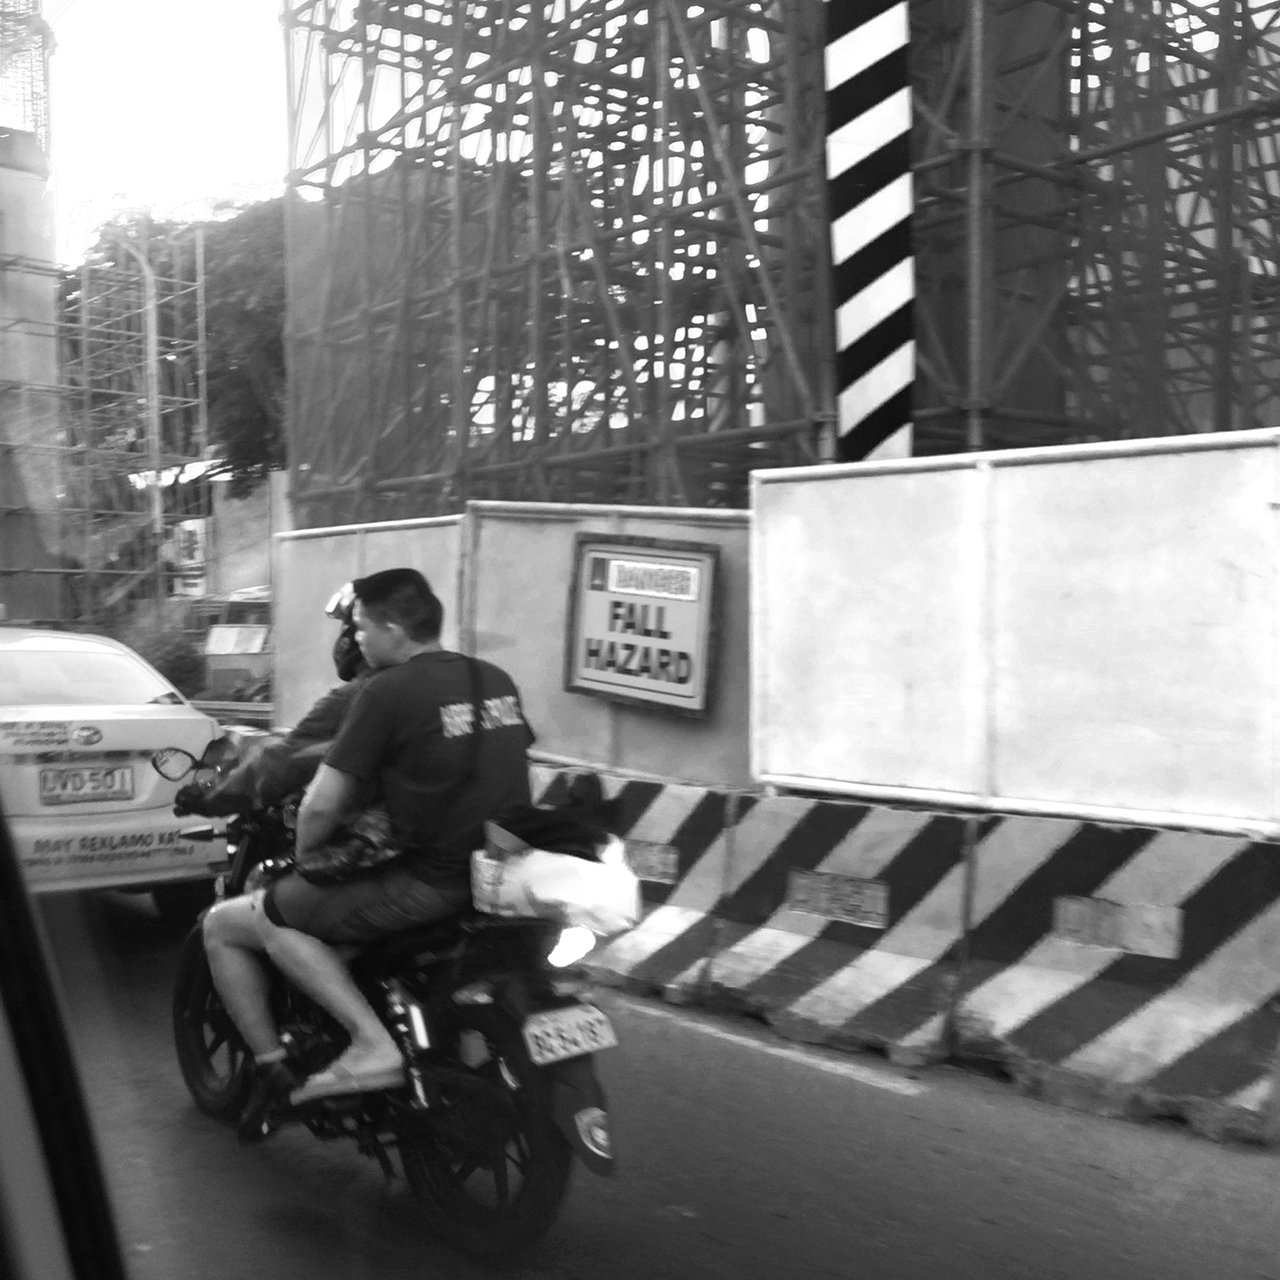 manilla man on bike no helmet